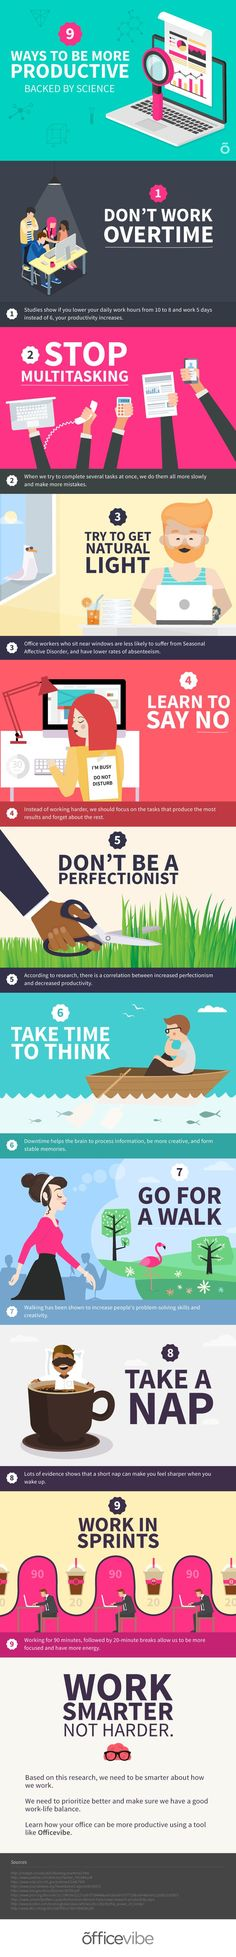 9 Ways To Be More #Productive: Backed By Science - #infographic